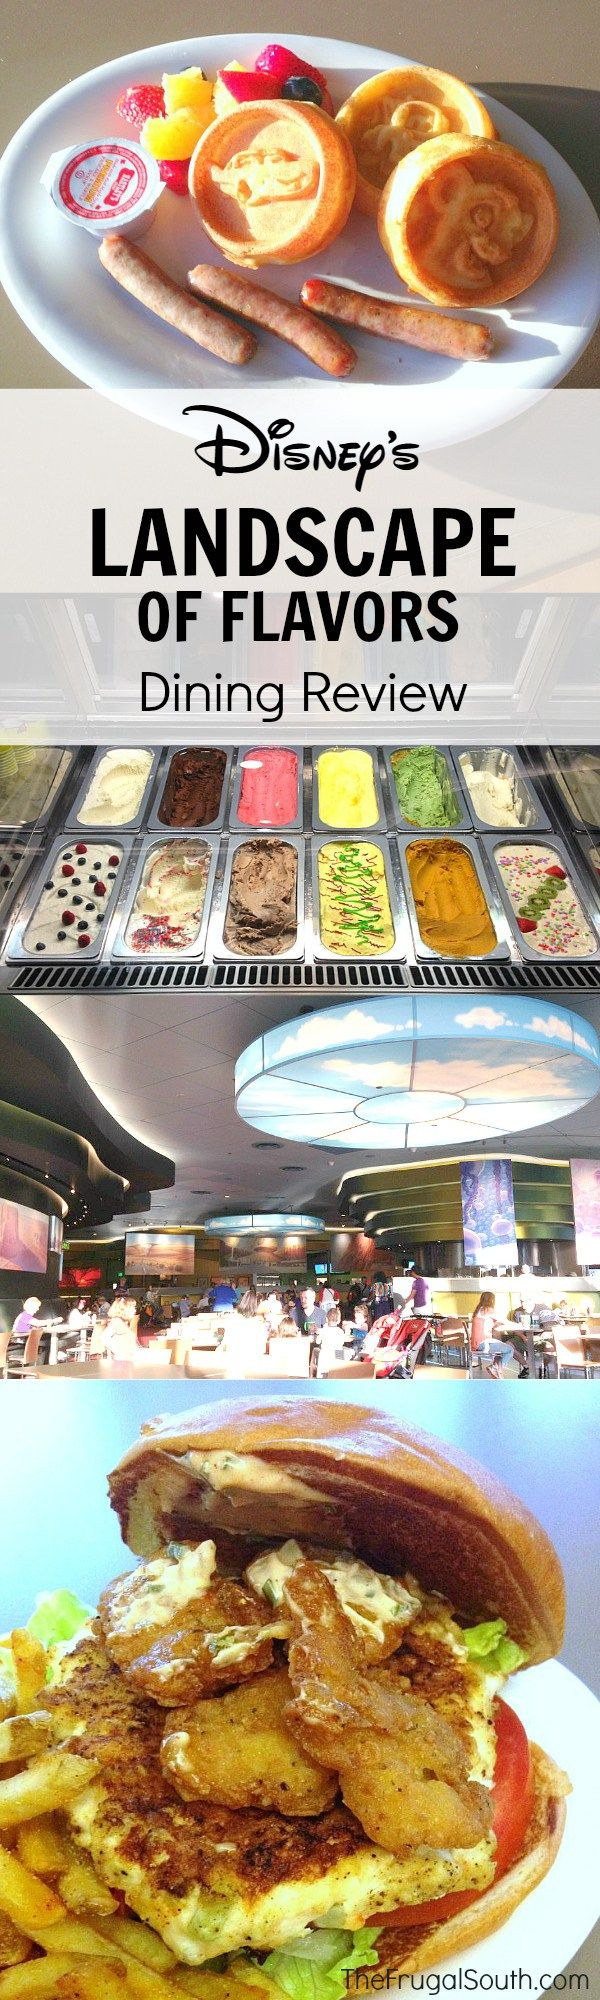 Can't miss quick service dining at Art of Animation Resort. Landscape of Flavors Disney dining review.